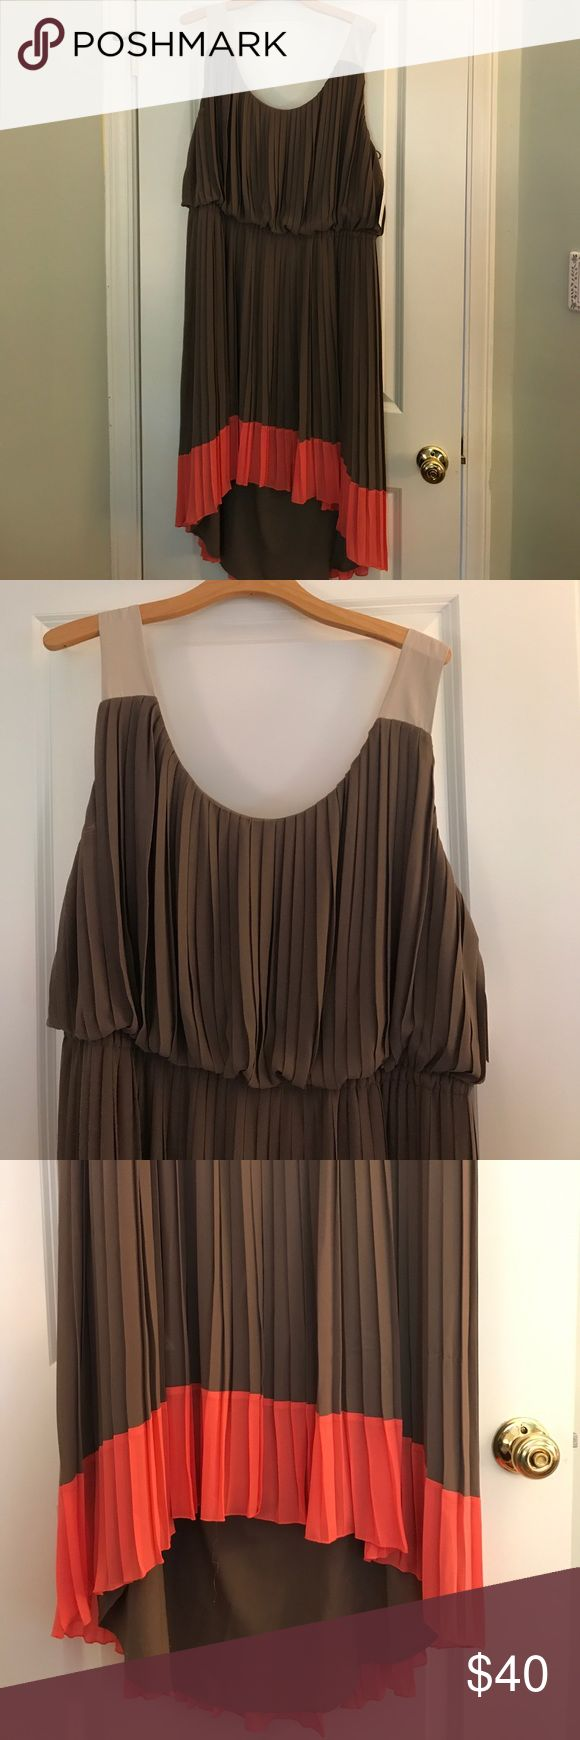 Jessie Simpson plus size high/low dress Jessica Simpson dress never worn, tags still on. Brown body and bright pink around the bottom. Size 18, stretchy waist. Jessica Simpson Dresses High Low